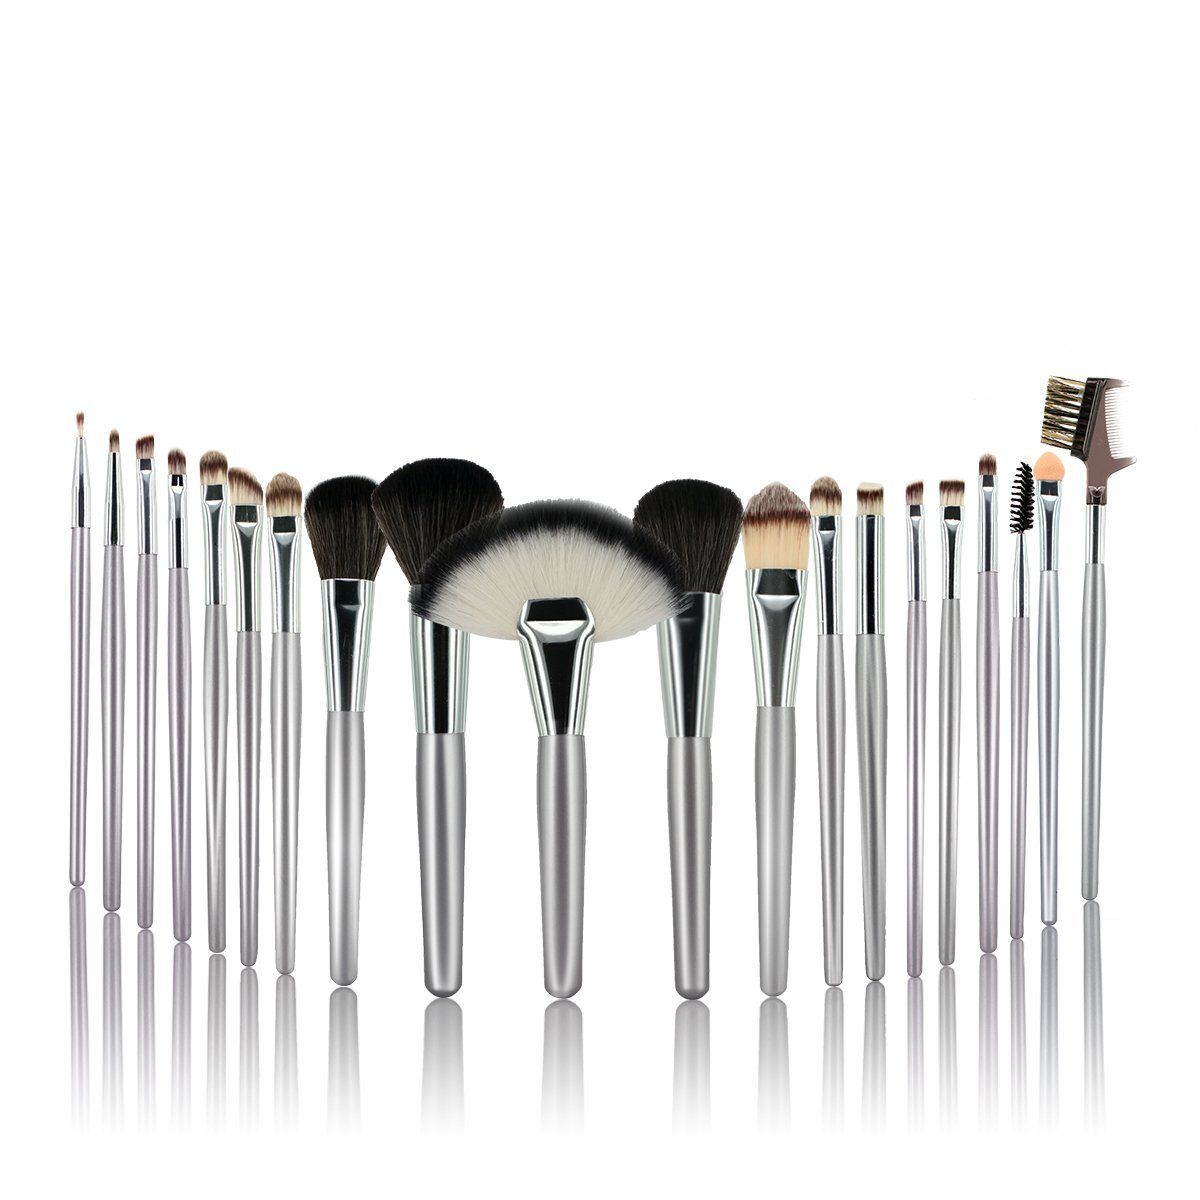 AmoVee® Cosmetic Brush Set Premium Synthetic Wool Hair